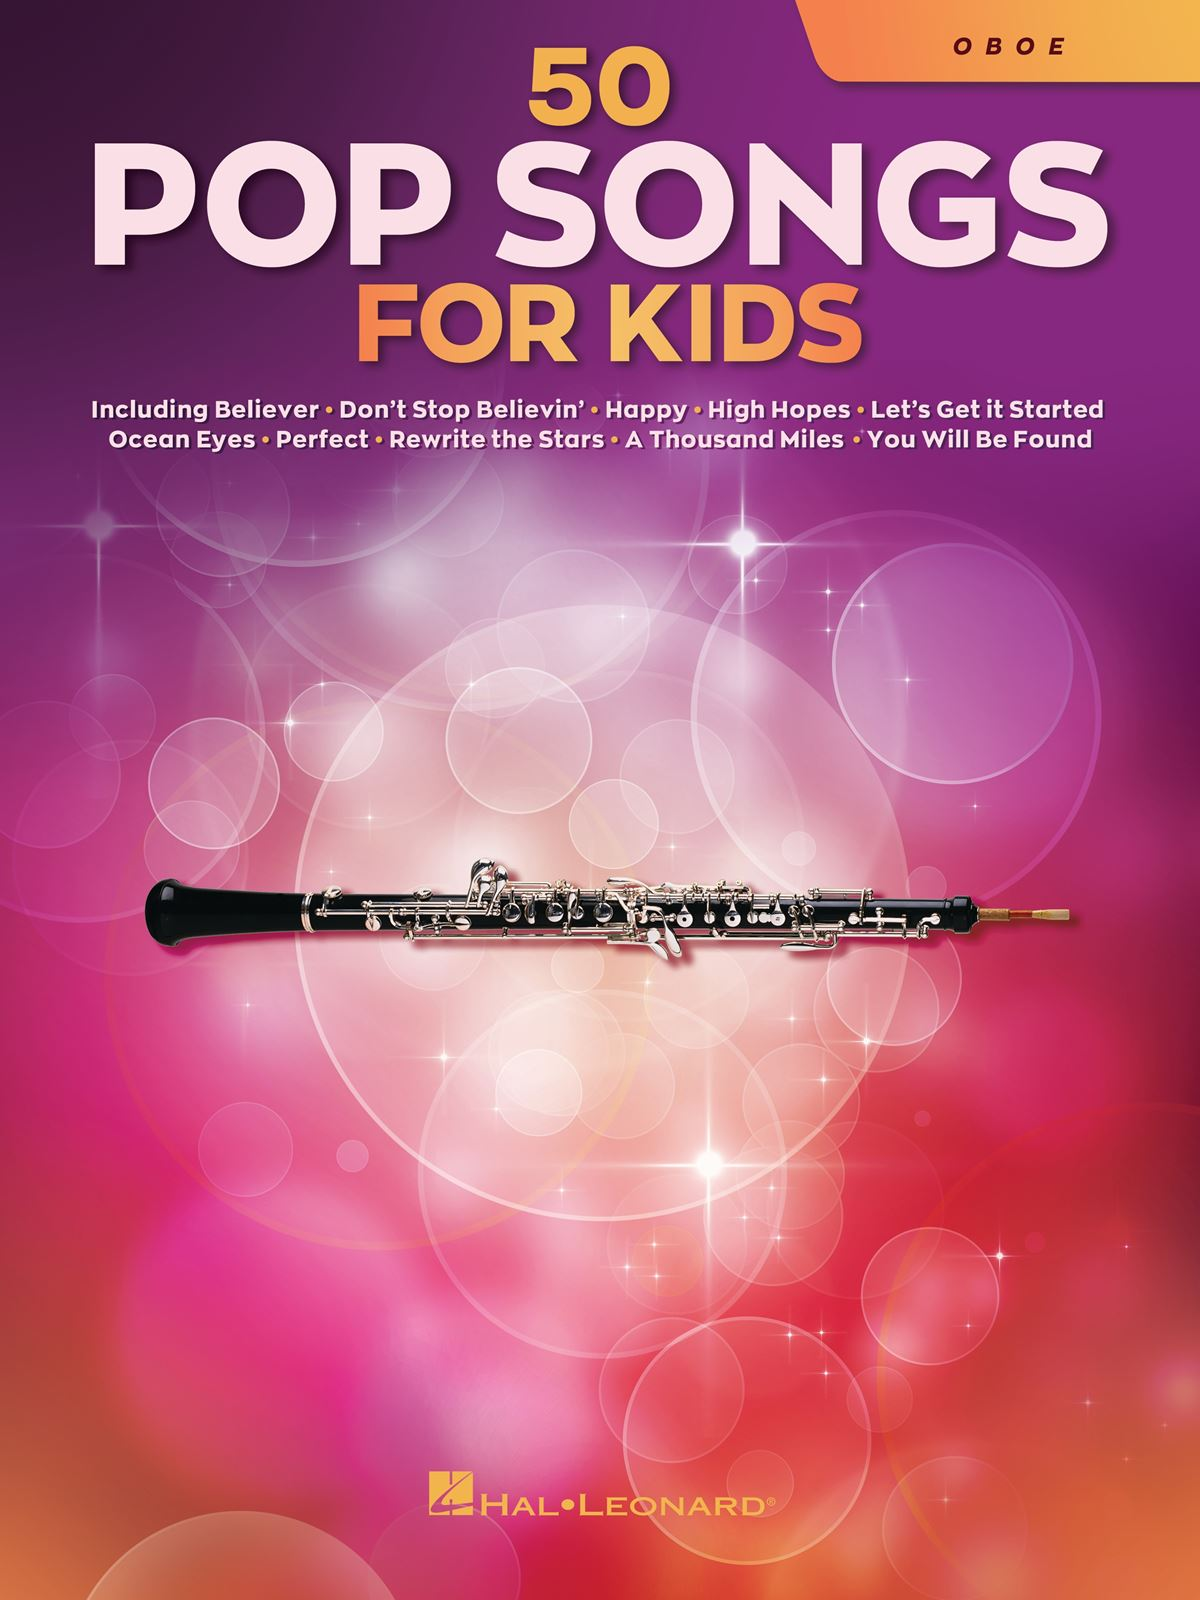 50 Pop Songs for Kids: Oboe Solo: Instrumental Album